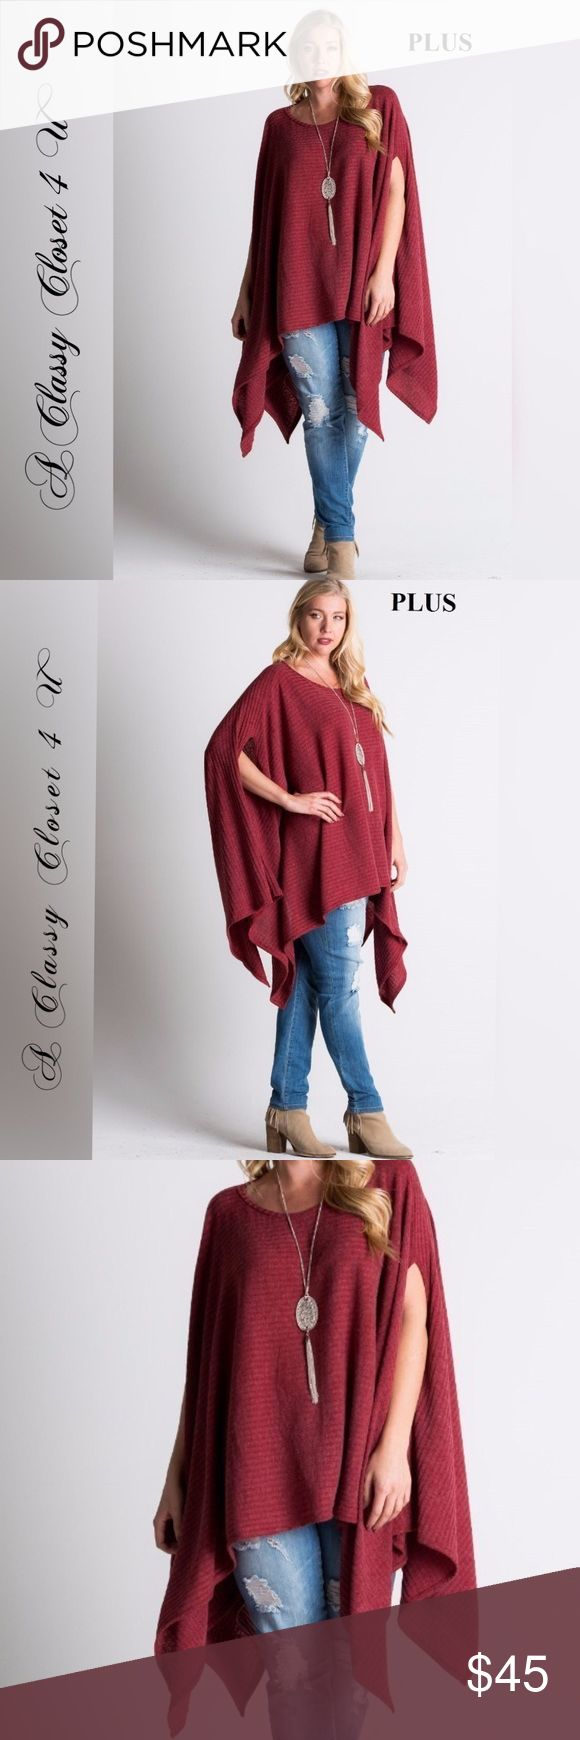 Plus Size Asymmetrical Hem Knit Poncho For sale is a classy, chic and flattering loose fit ribbed tunic poncho top with asymmetric hem. Best worn with a tank underneath. So fab!! Fabric Content: 81% POLYESTER 15% RAYON 4% SPANDEX Made In: USA ***PLUS SIZE** 1XL-2 / 2XL-2 / 3XL-2 Tops